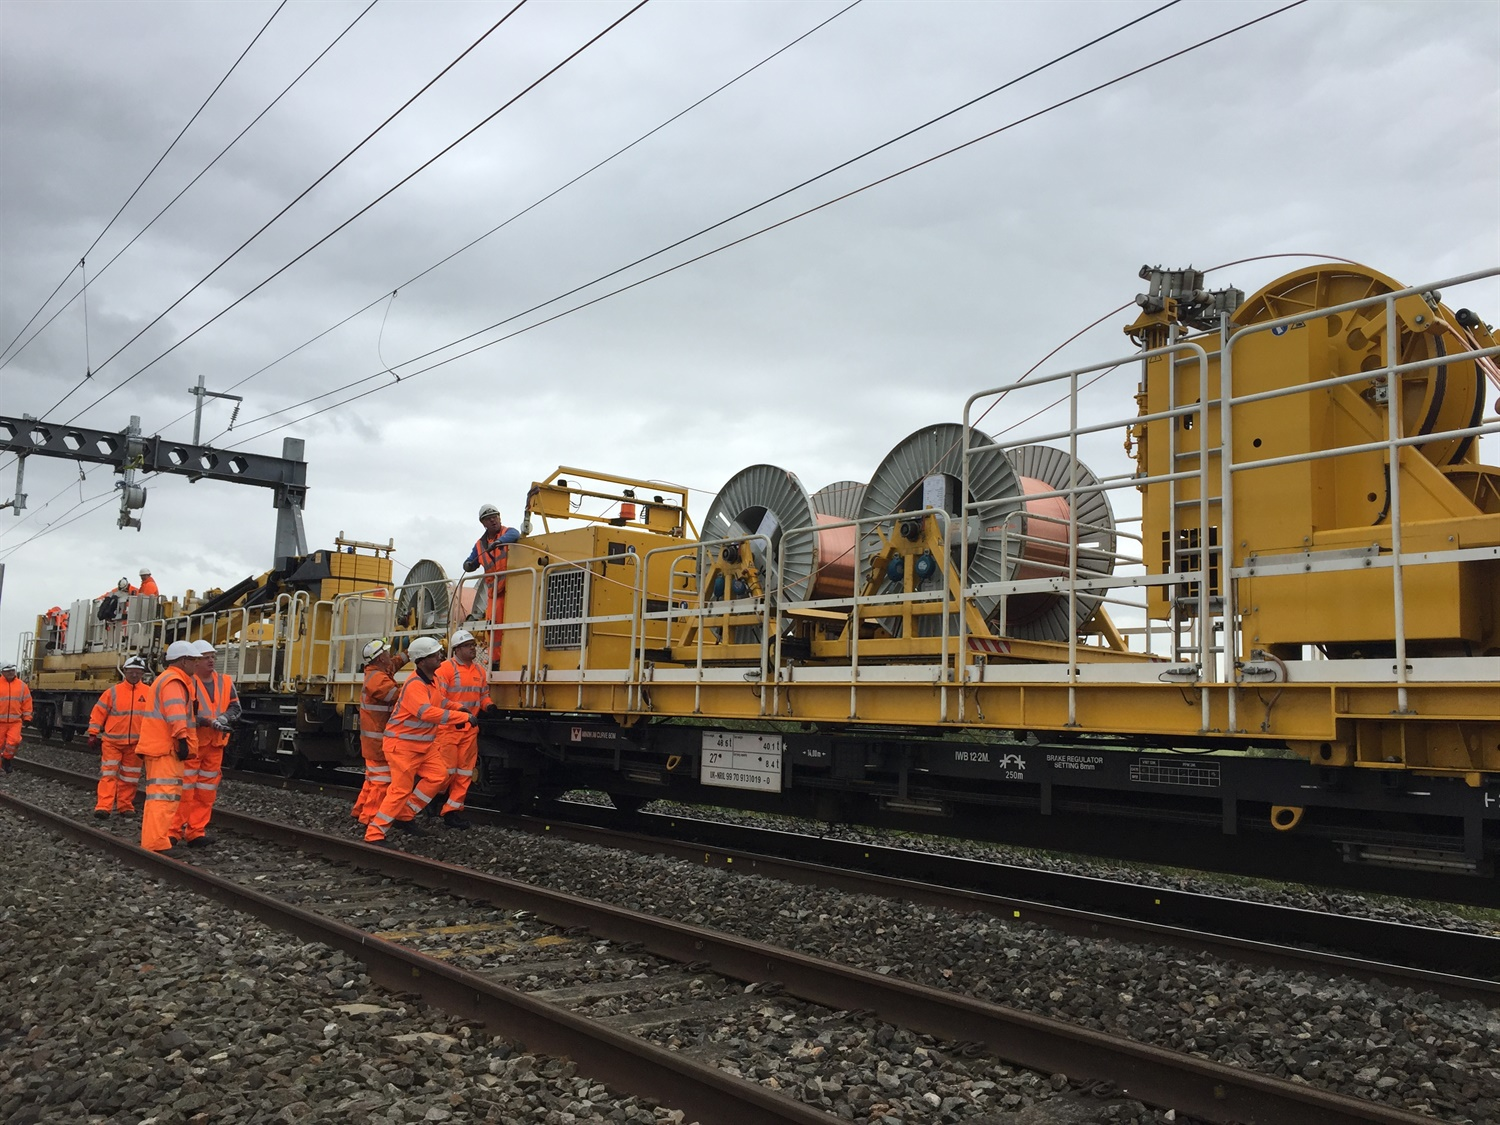 Great Western modernisation moves forward as NR completes key upgrade